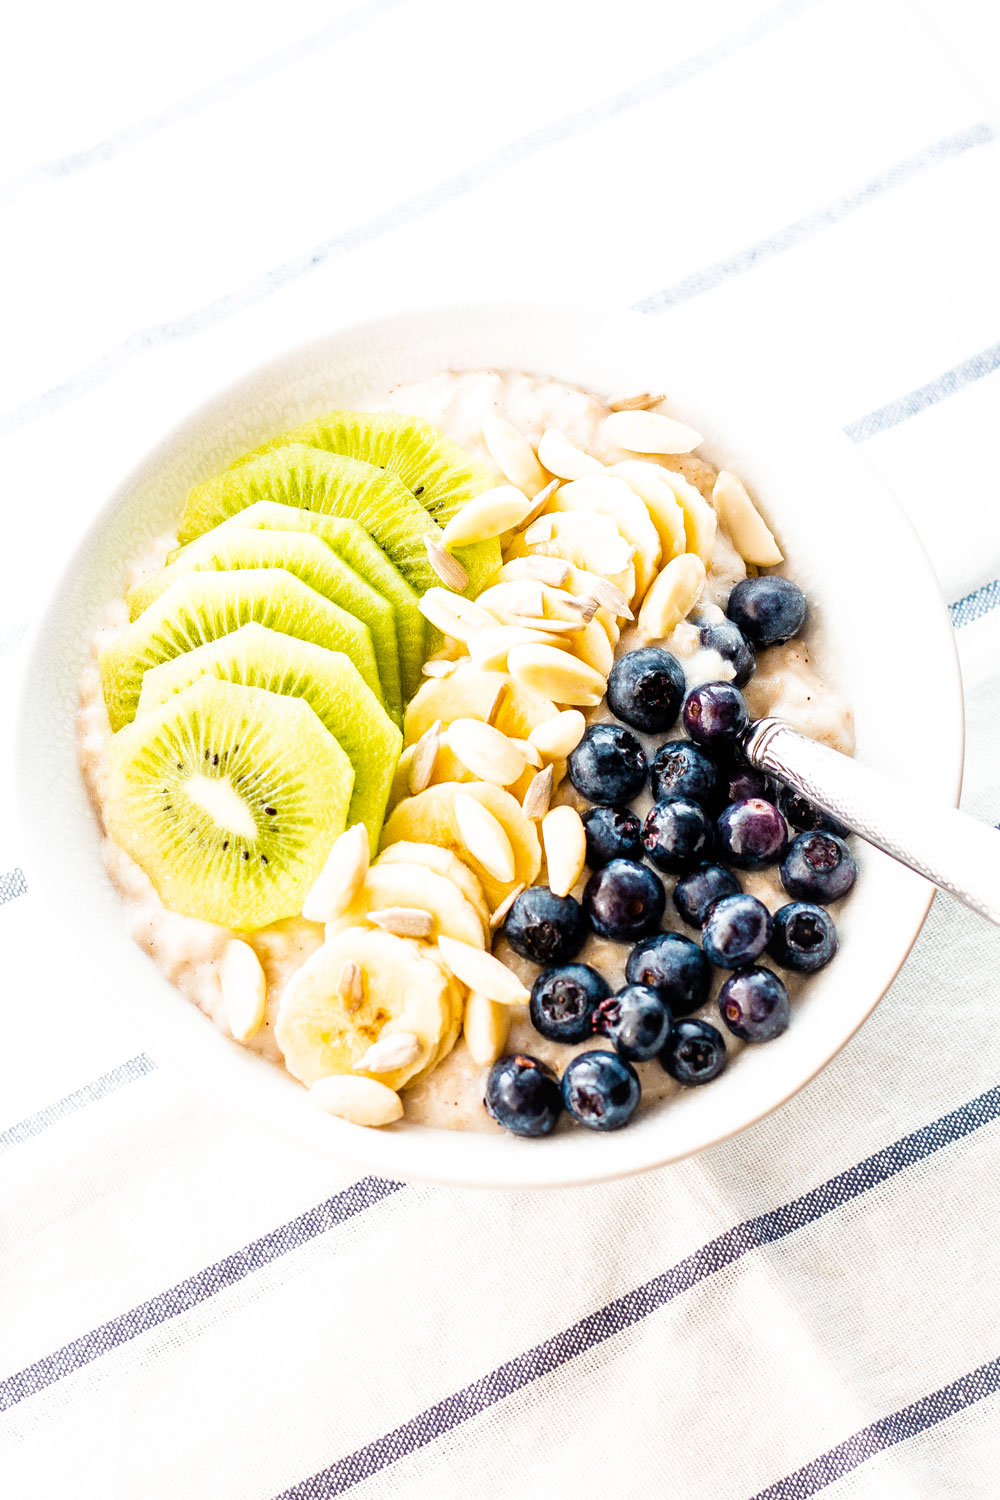 This Immunity-Boosting Oatmeal Breakfast Bowl is a healthy way to start your day, especially during flu season. It's filled with good for you ingredients that will help your body fight off viral infections and recover faster if you do get sick! https://www.spotebi.com/recipes/immunity-boosting-oatmeal-breakfast-bowl/